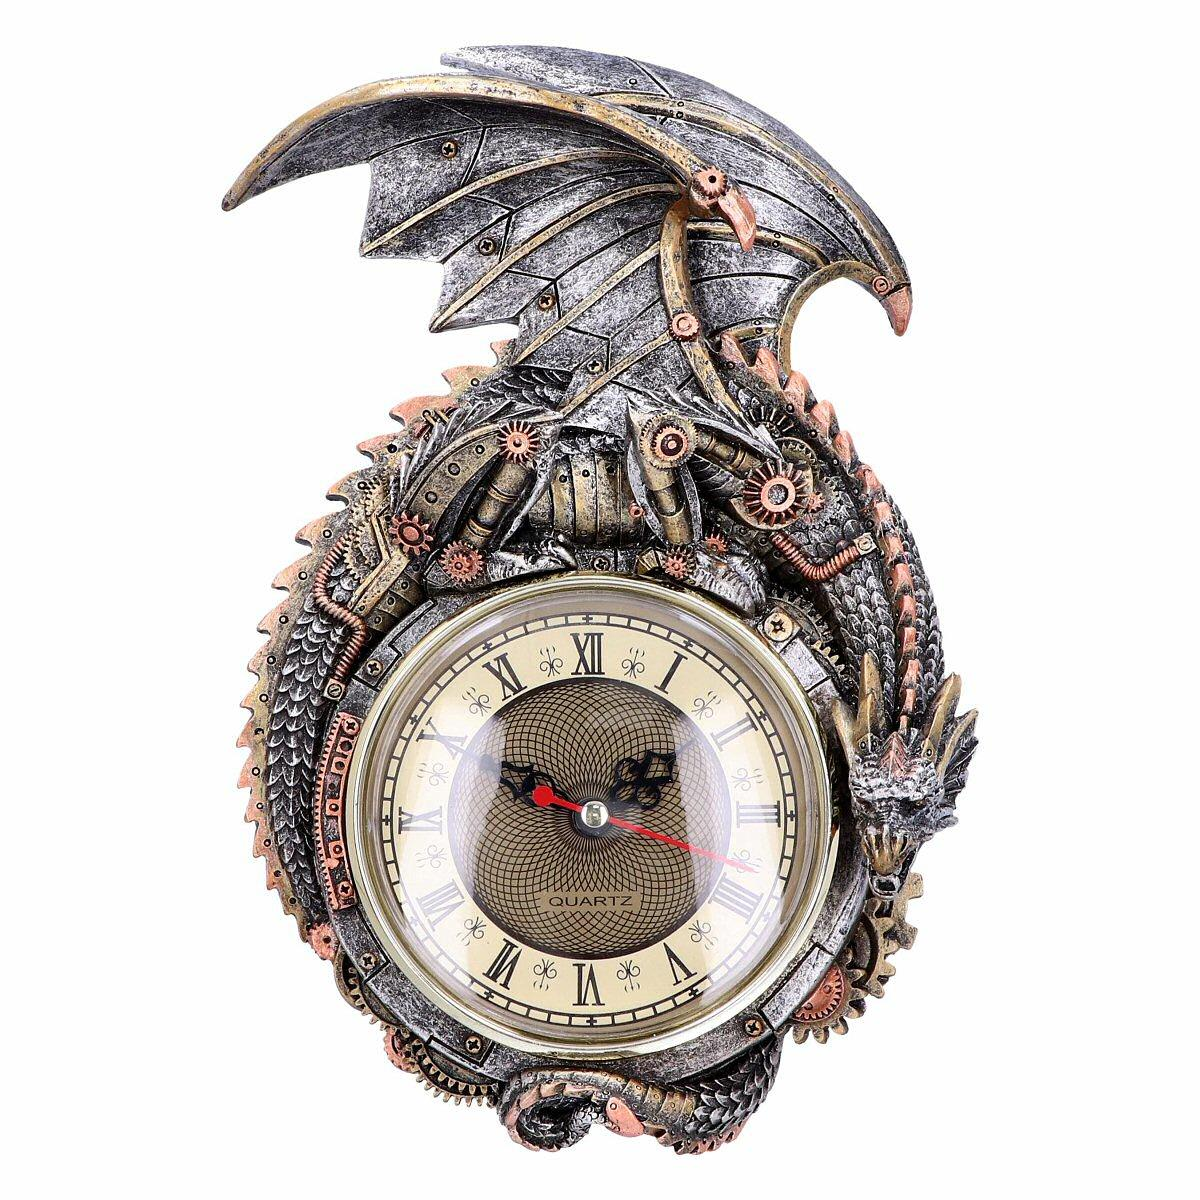 Clockwork Combustor - Steampunk Dragon Clock - Nemesis Now U4775P9